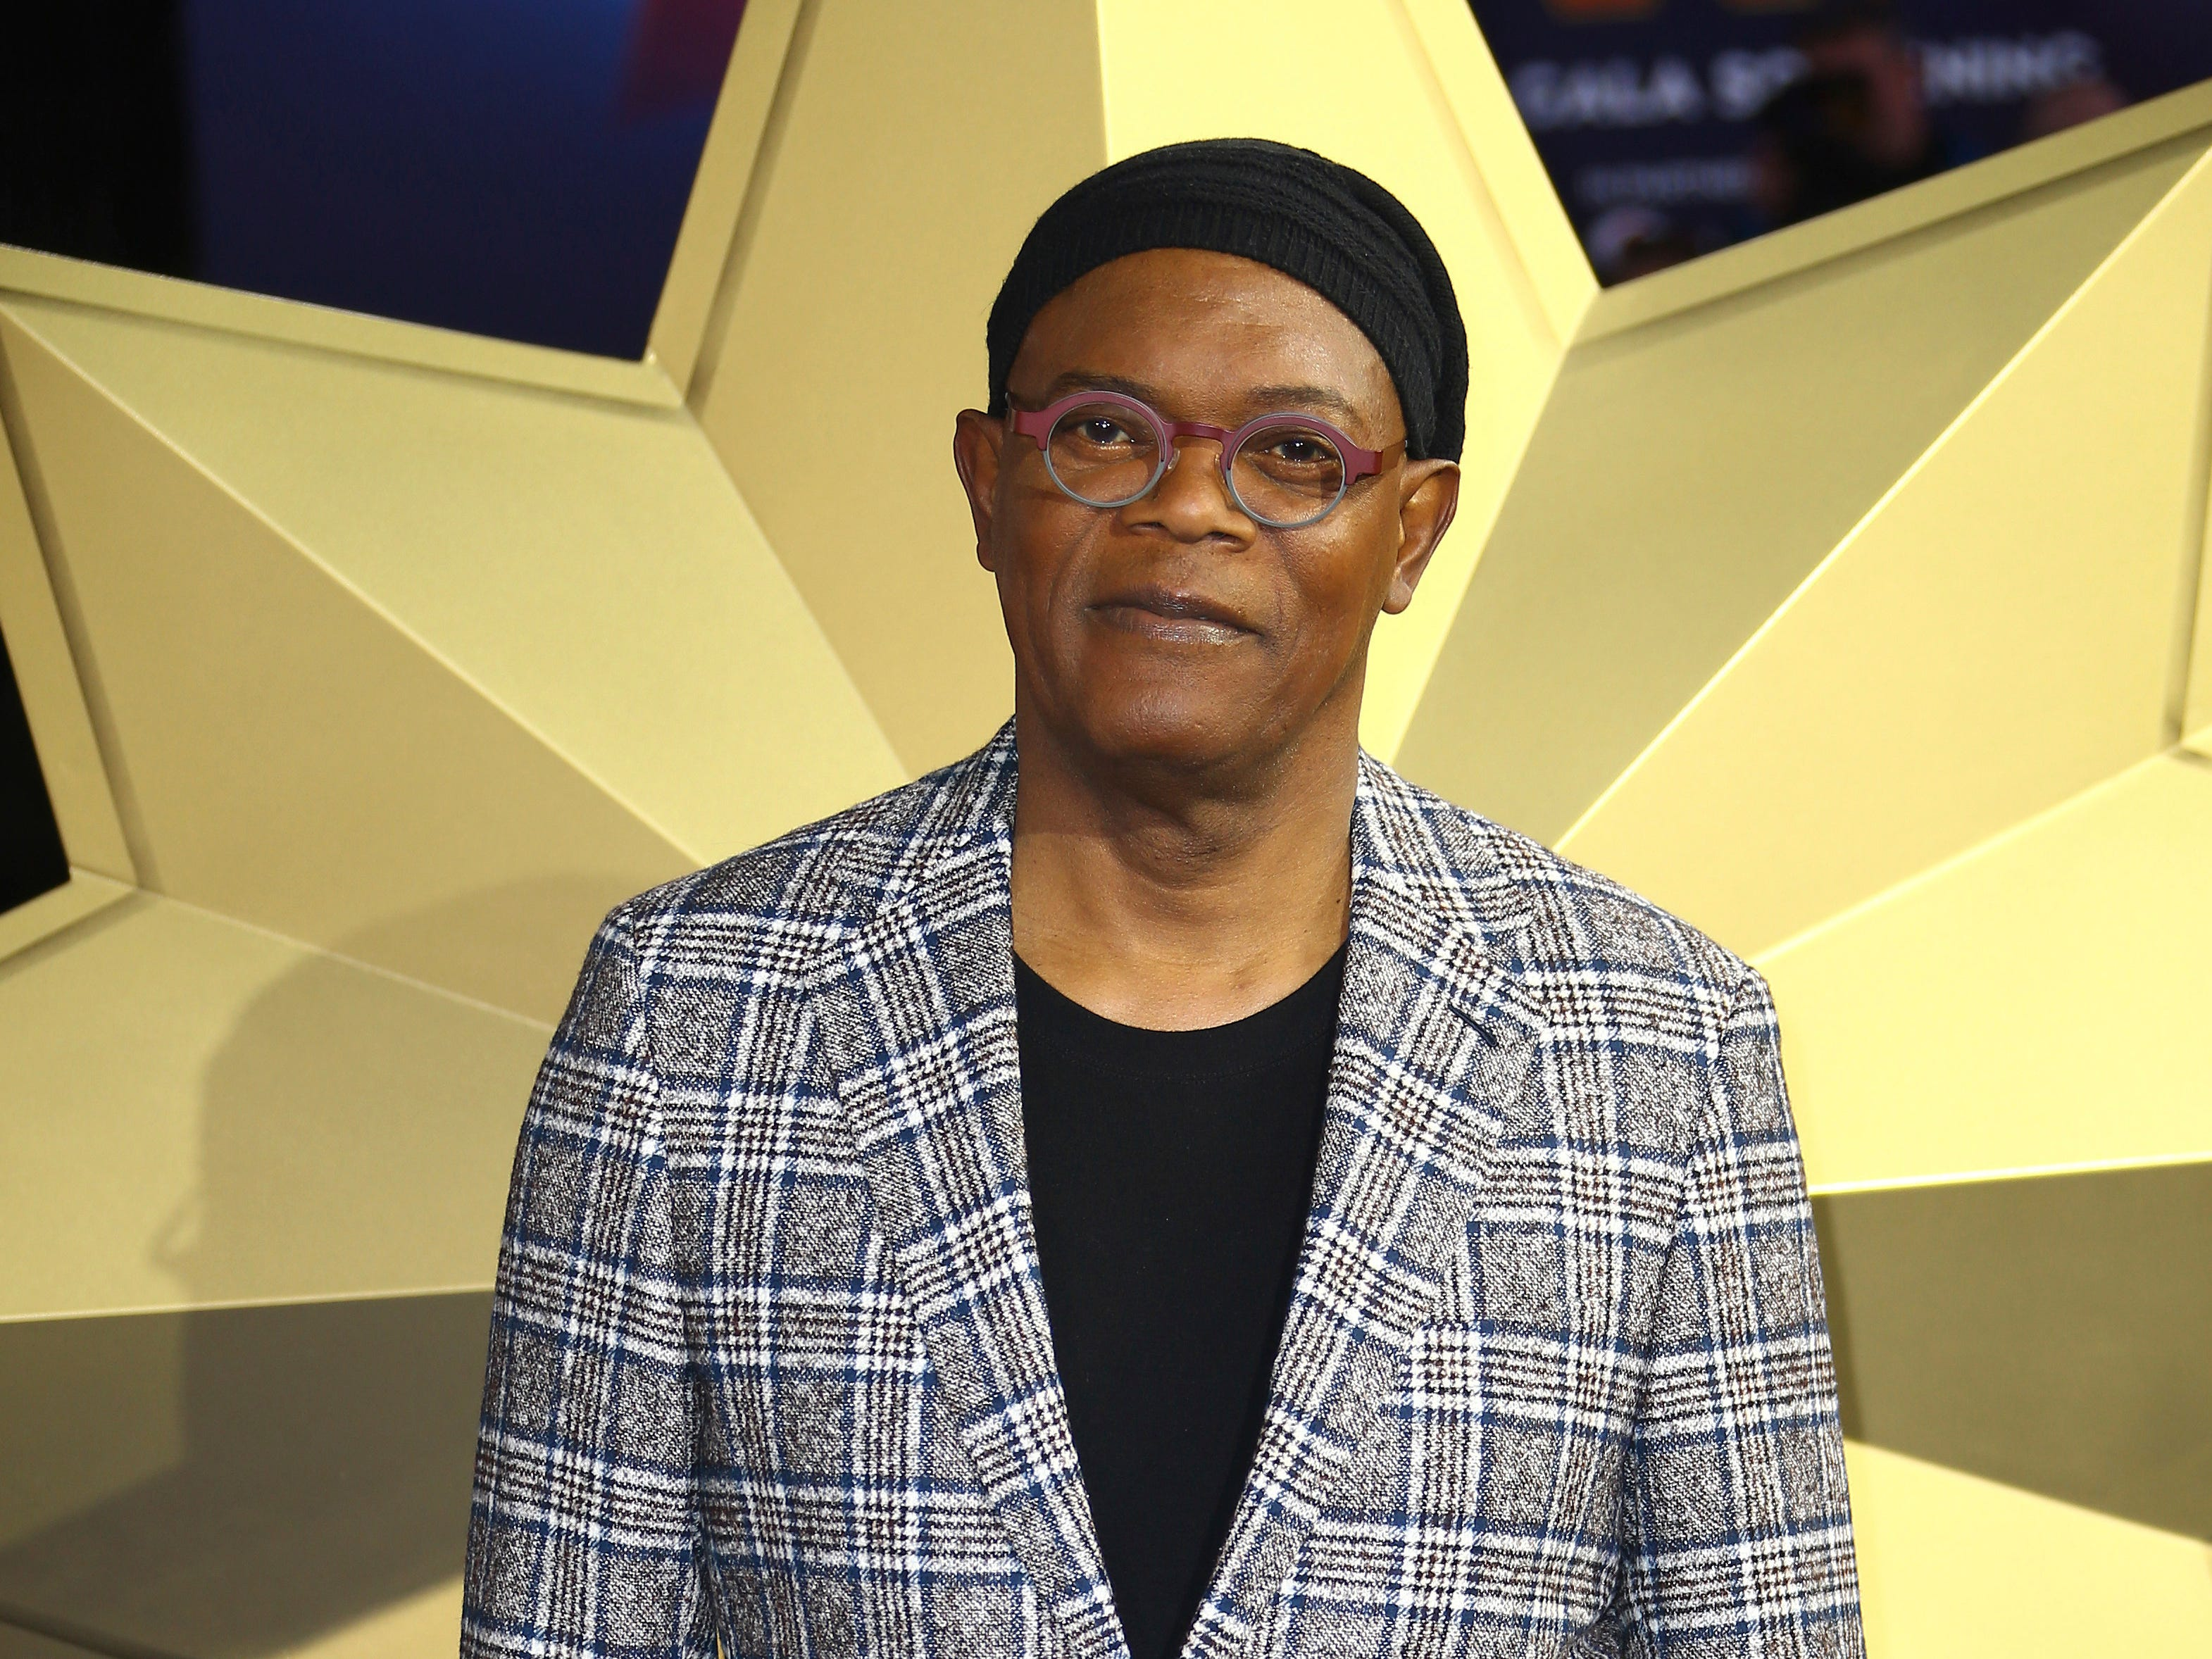 Actor Samuel L. Jackson poses for photographers upon arrival at the European Gala of Captain Marvel at a central London cinema, Wednesday, Feb. 27, 2019.